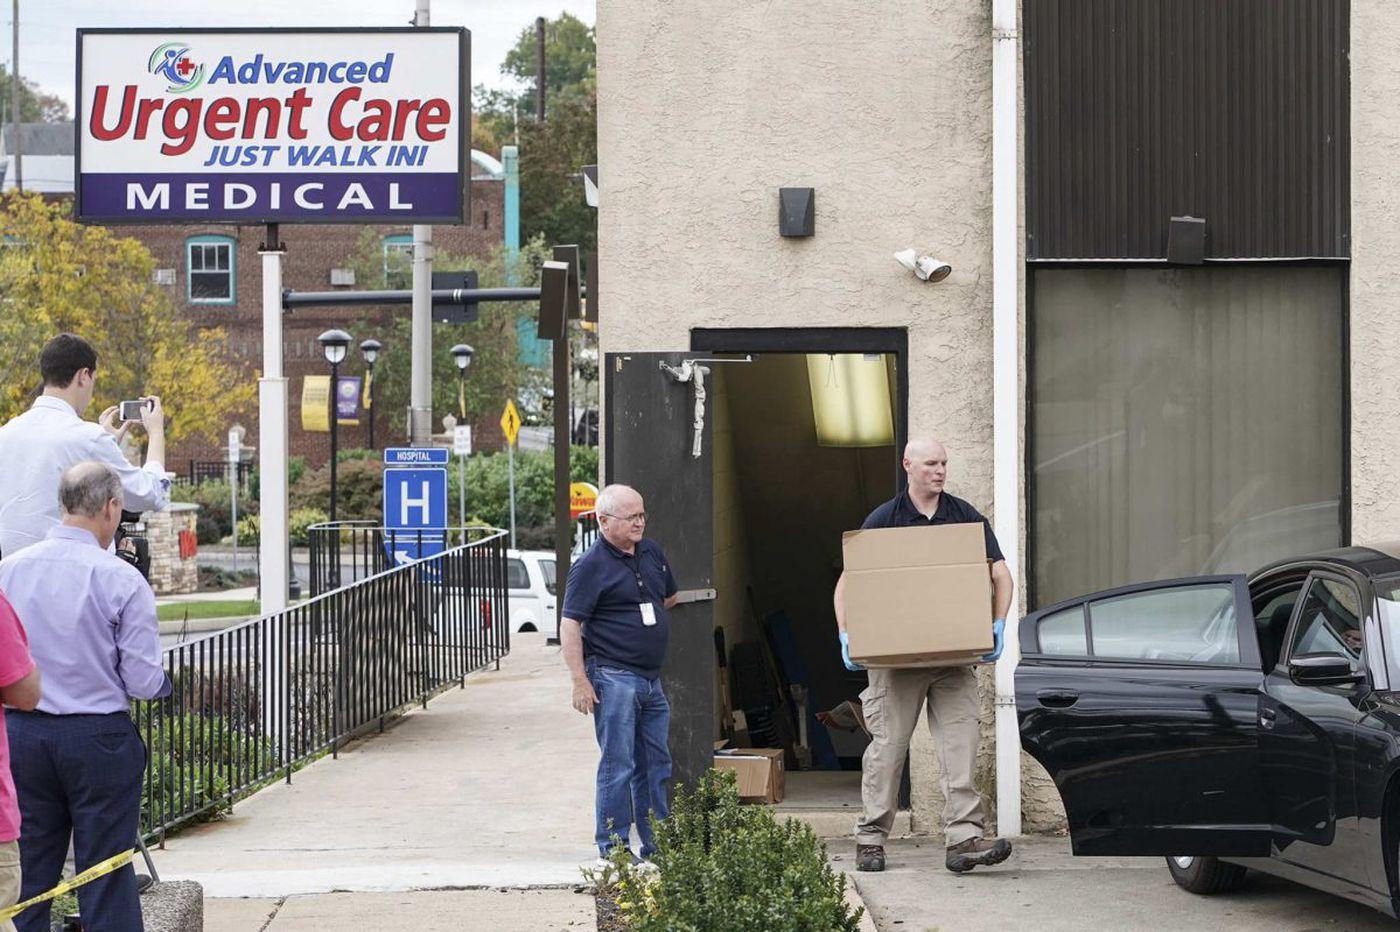 Feds raid Philly-area Advance Urgent Care centers